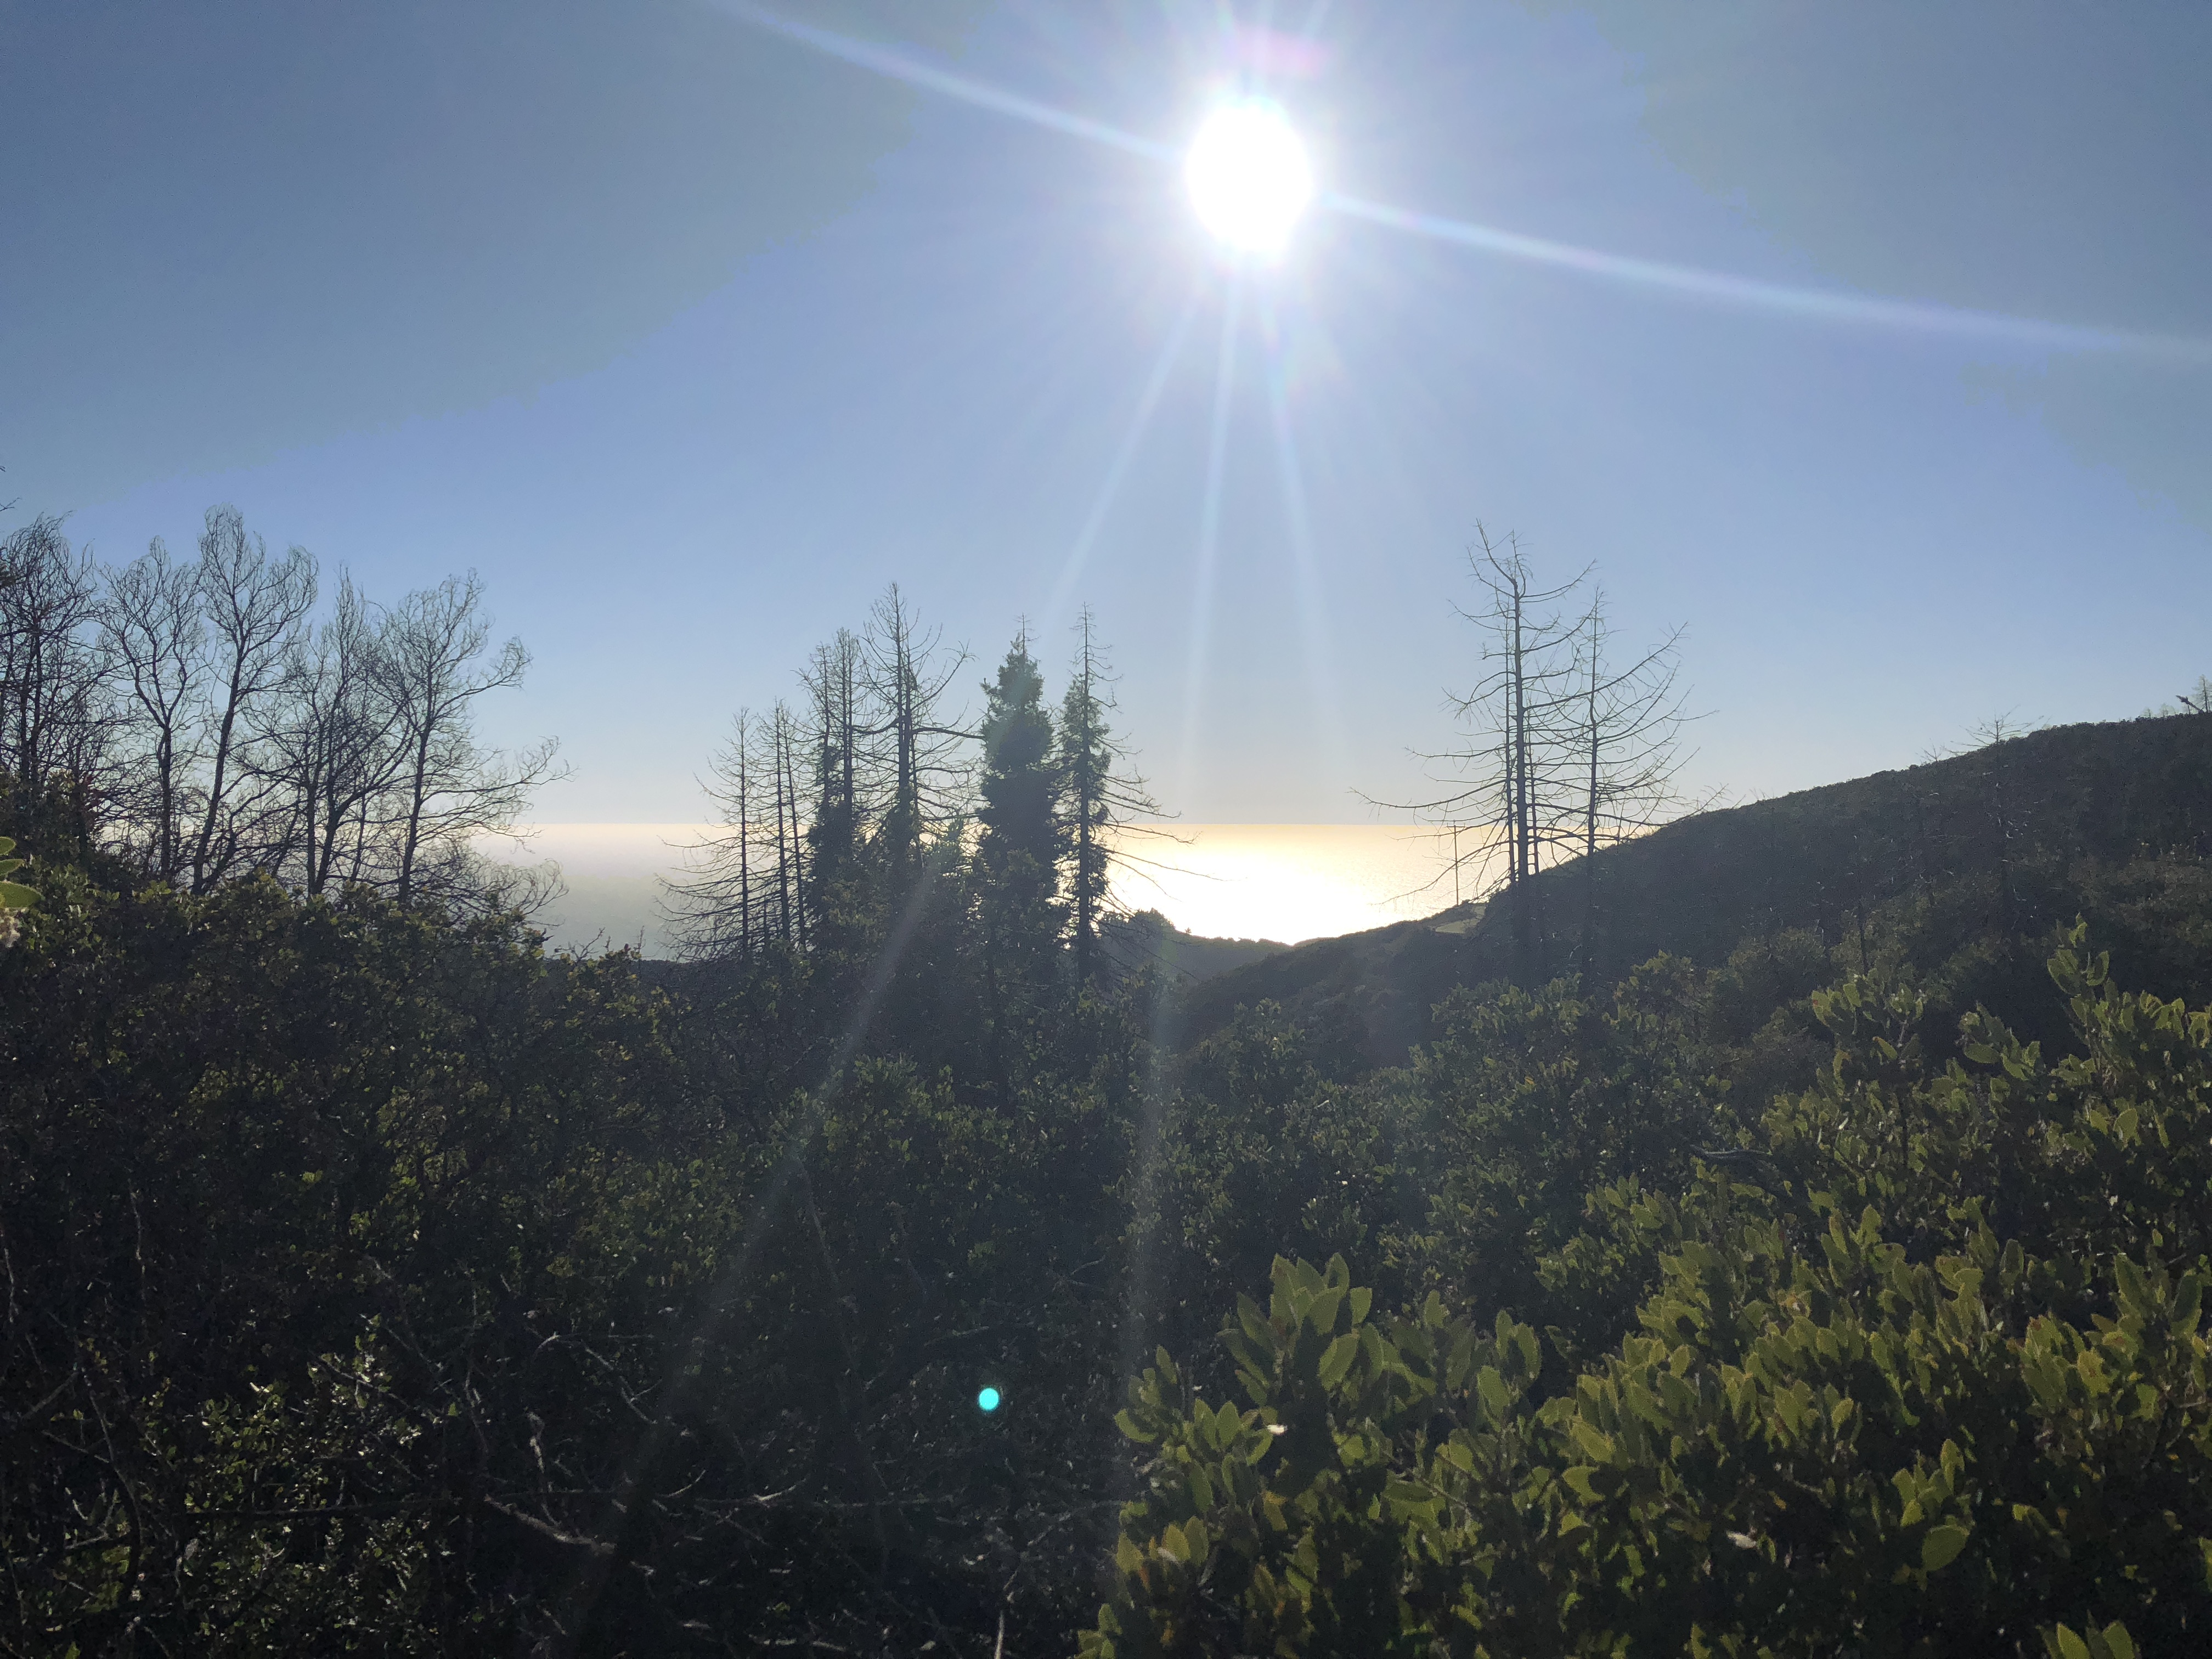 The view from Buzzard's Roost Trail